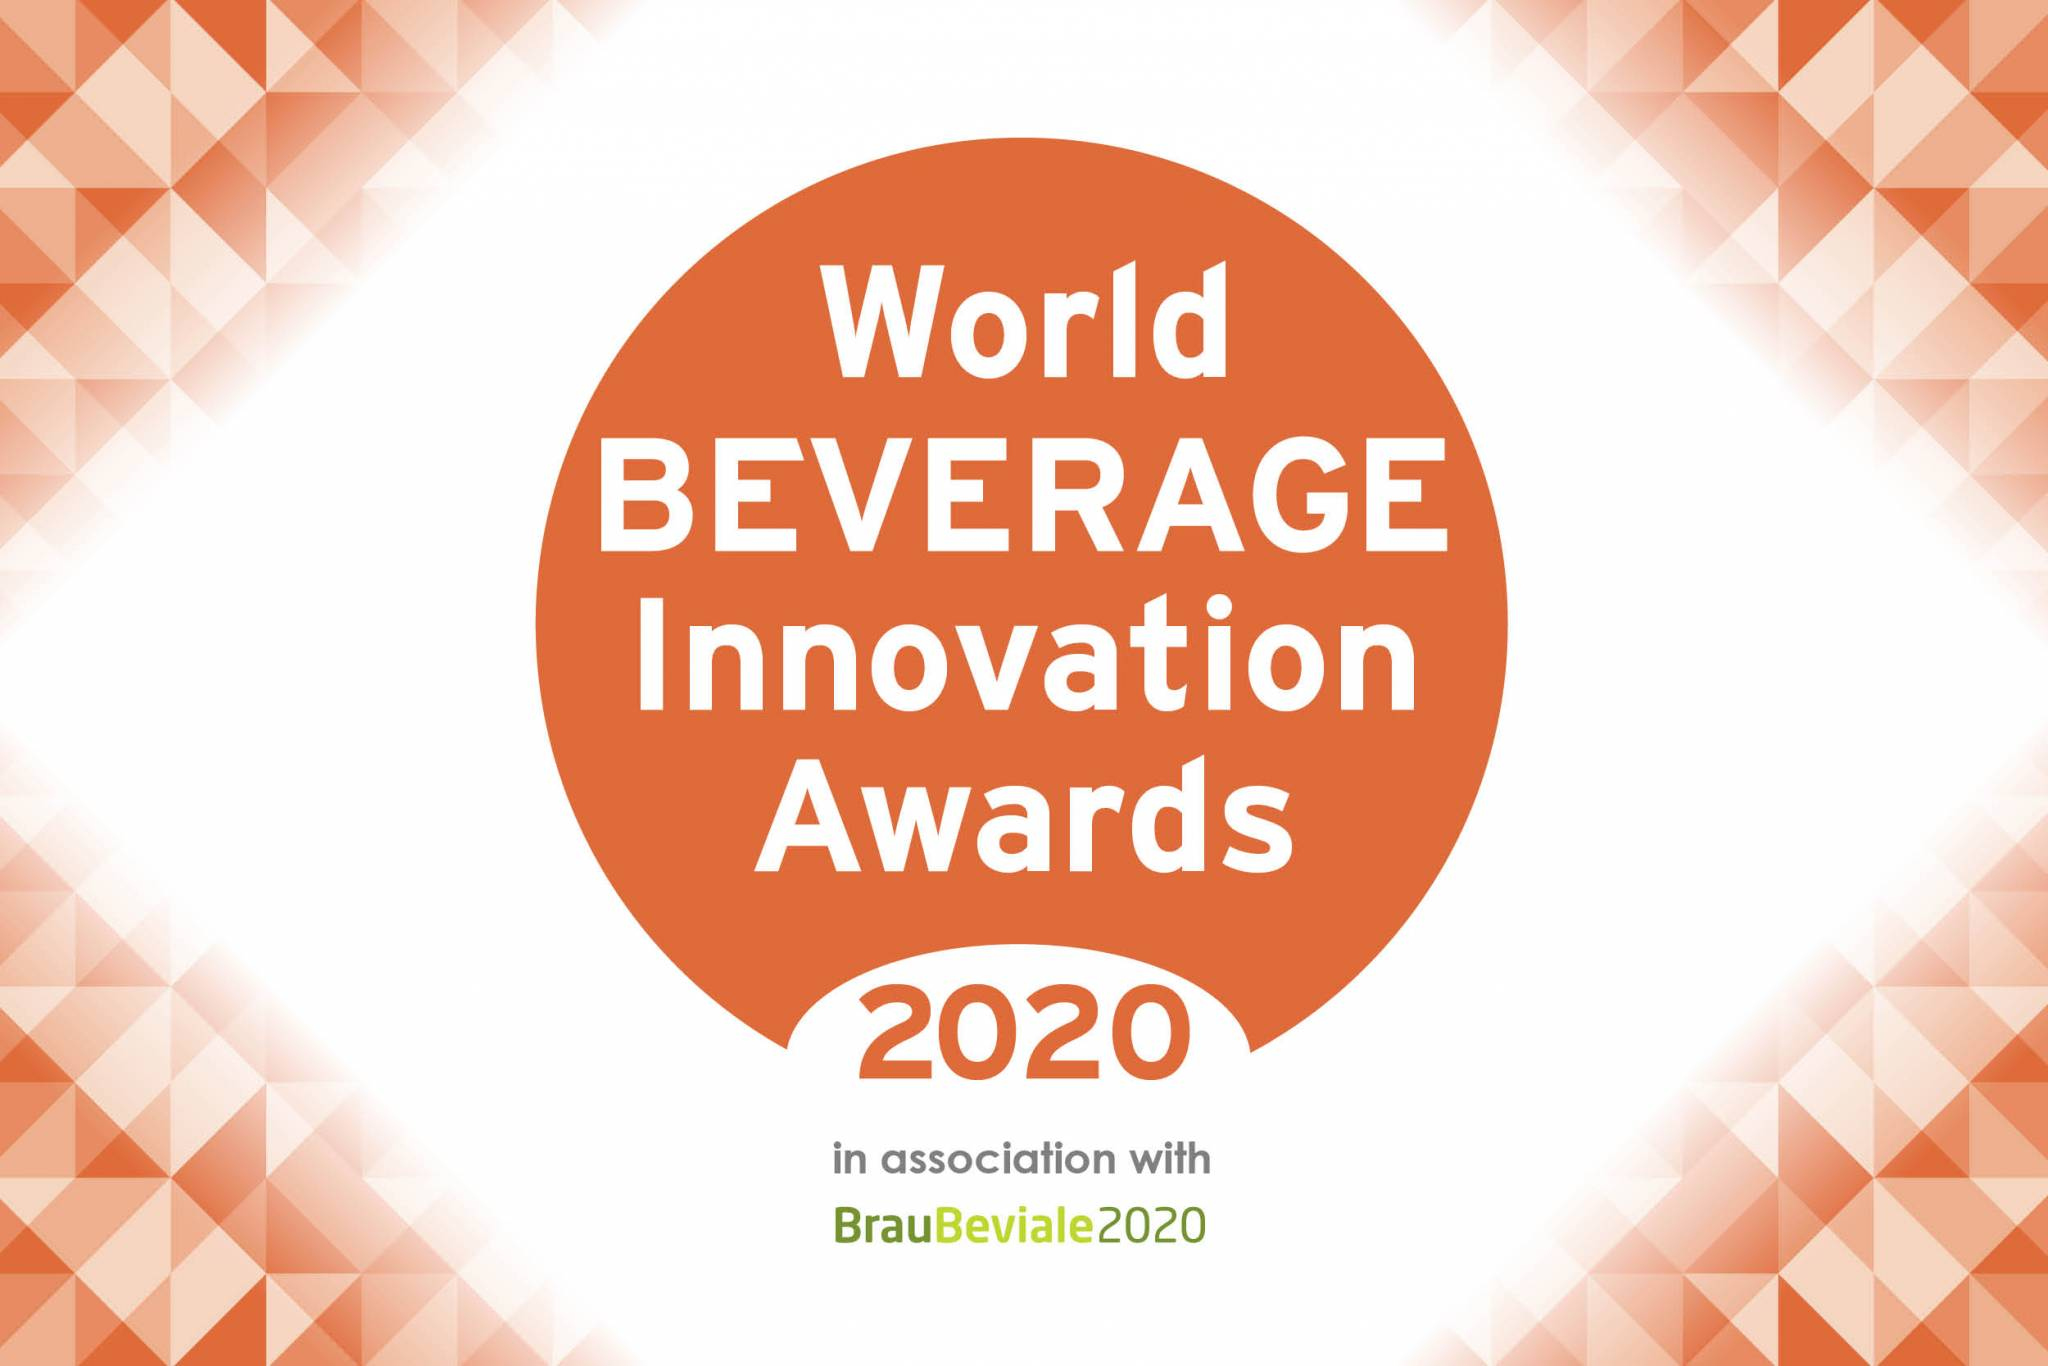 World Beverage Innovation Awards 2020: Winners revealed!